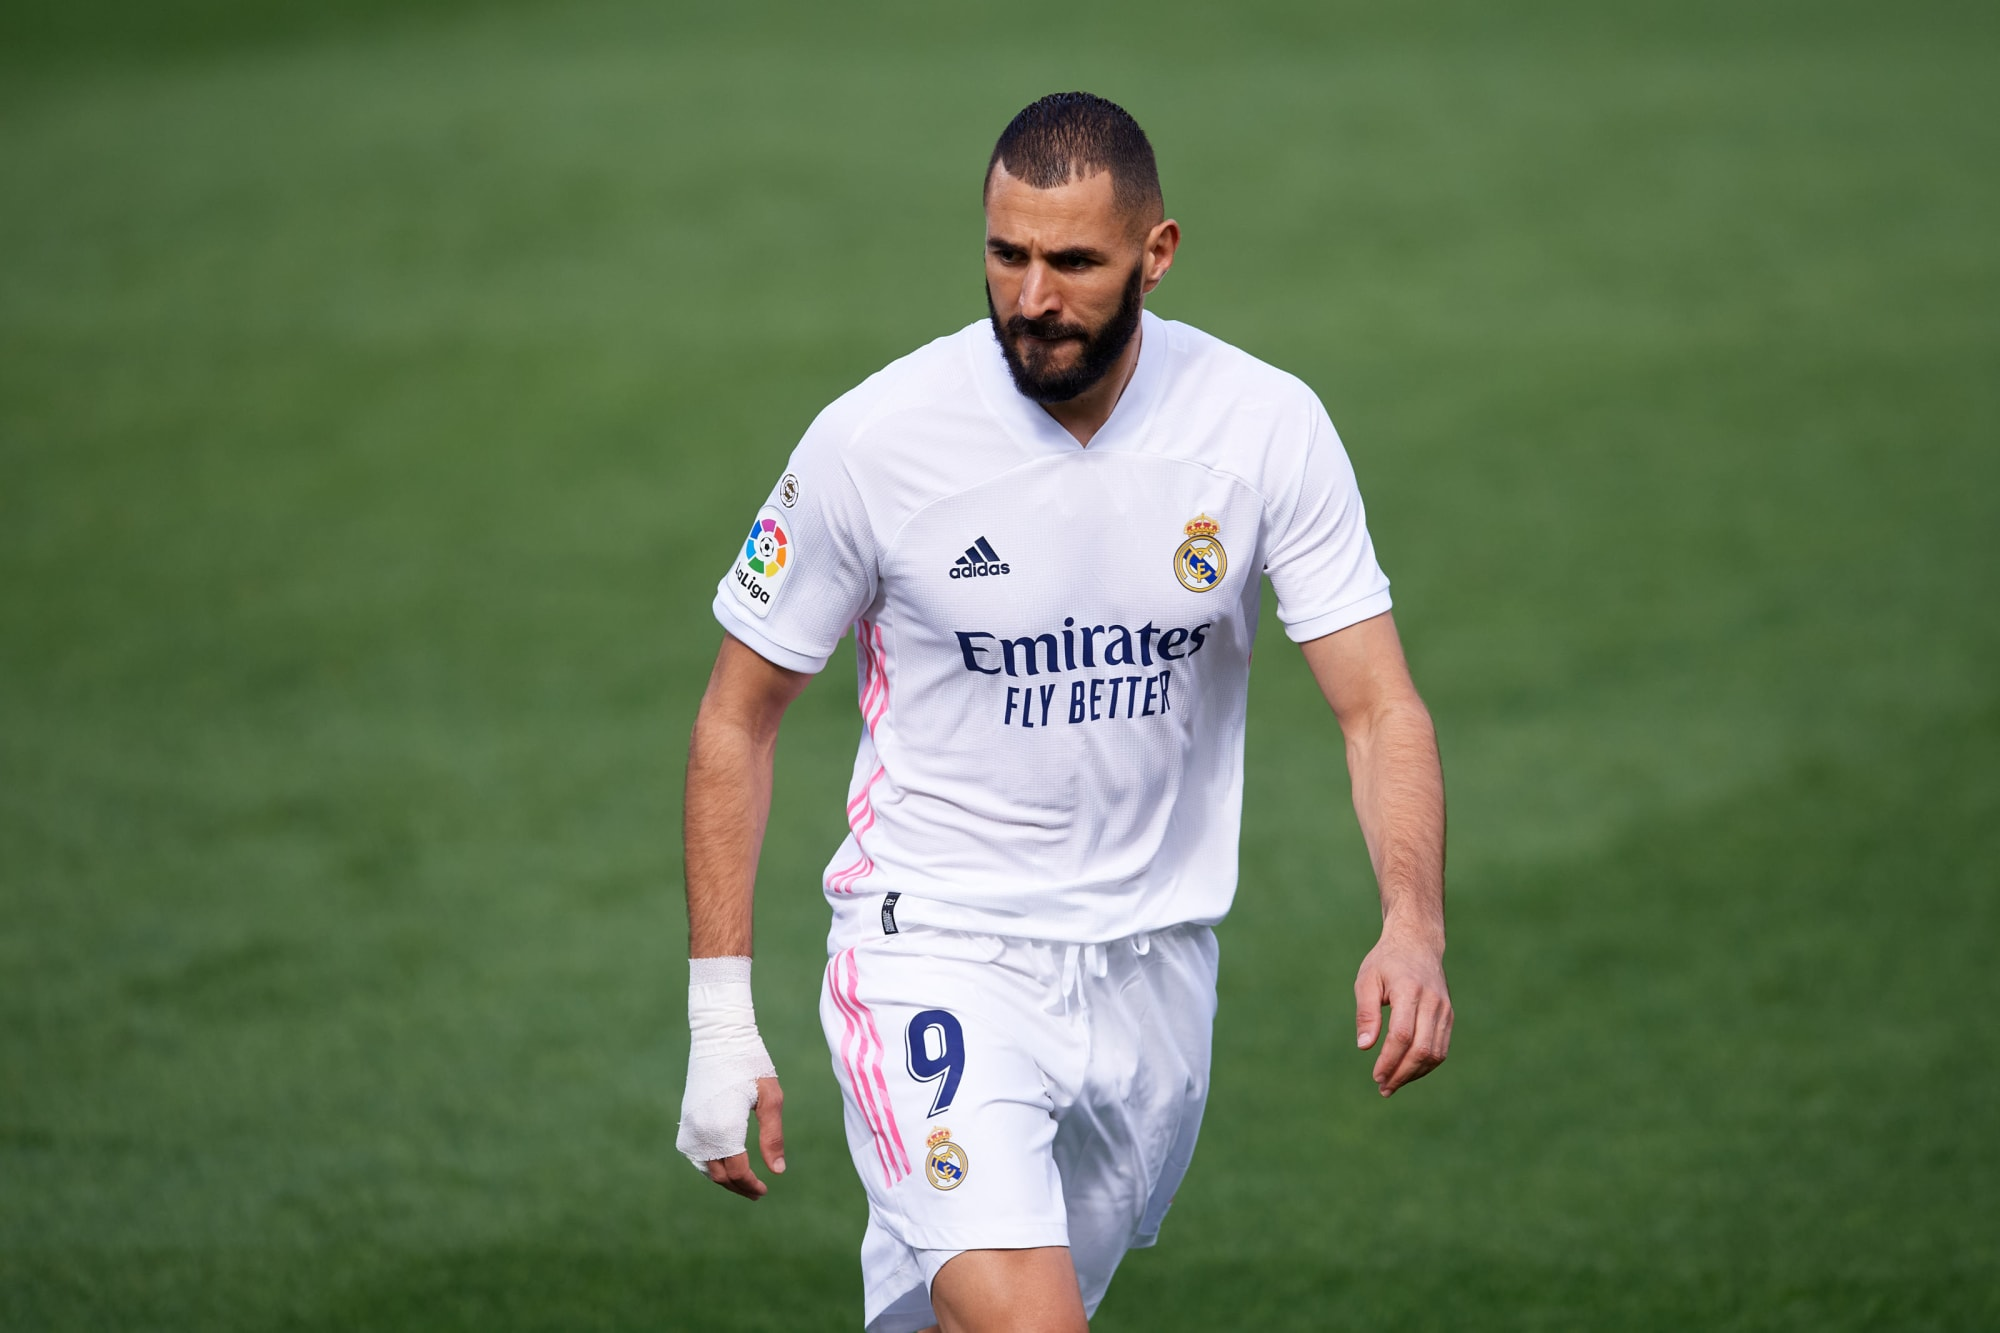 Real Madrid and Rafa Benitez alerted to ineligible player ...